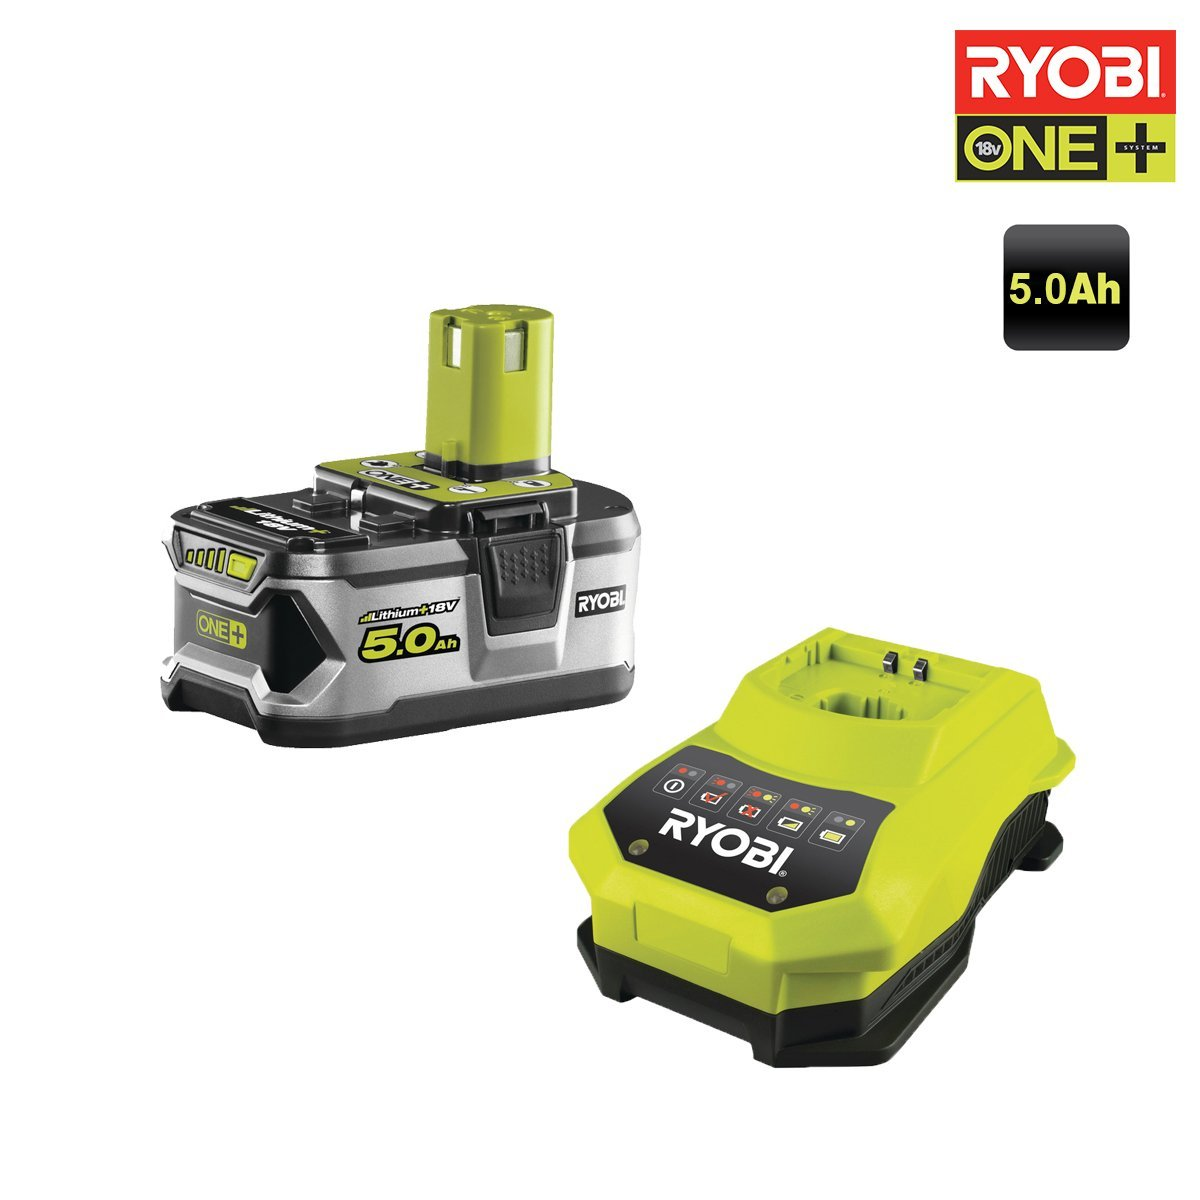 ryobi batteries chargers ryobi one starter kit battery. Black Bedroom Furniture Sets. Home Design Ideas